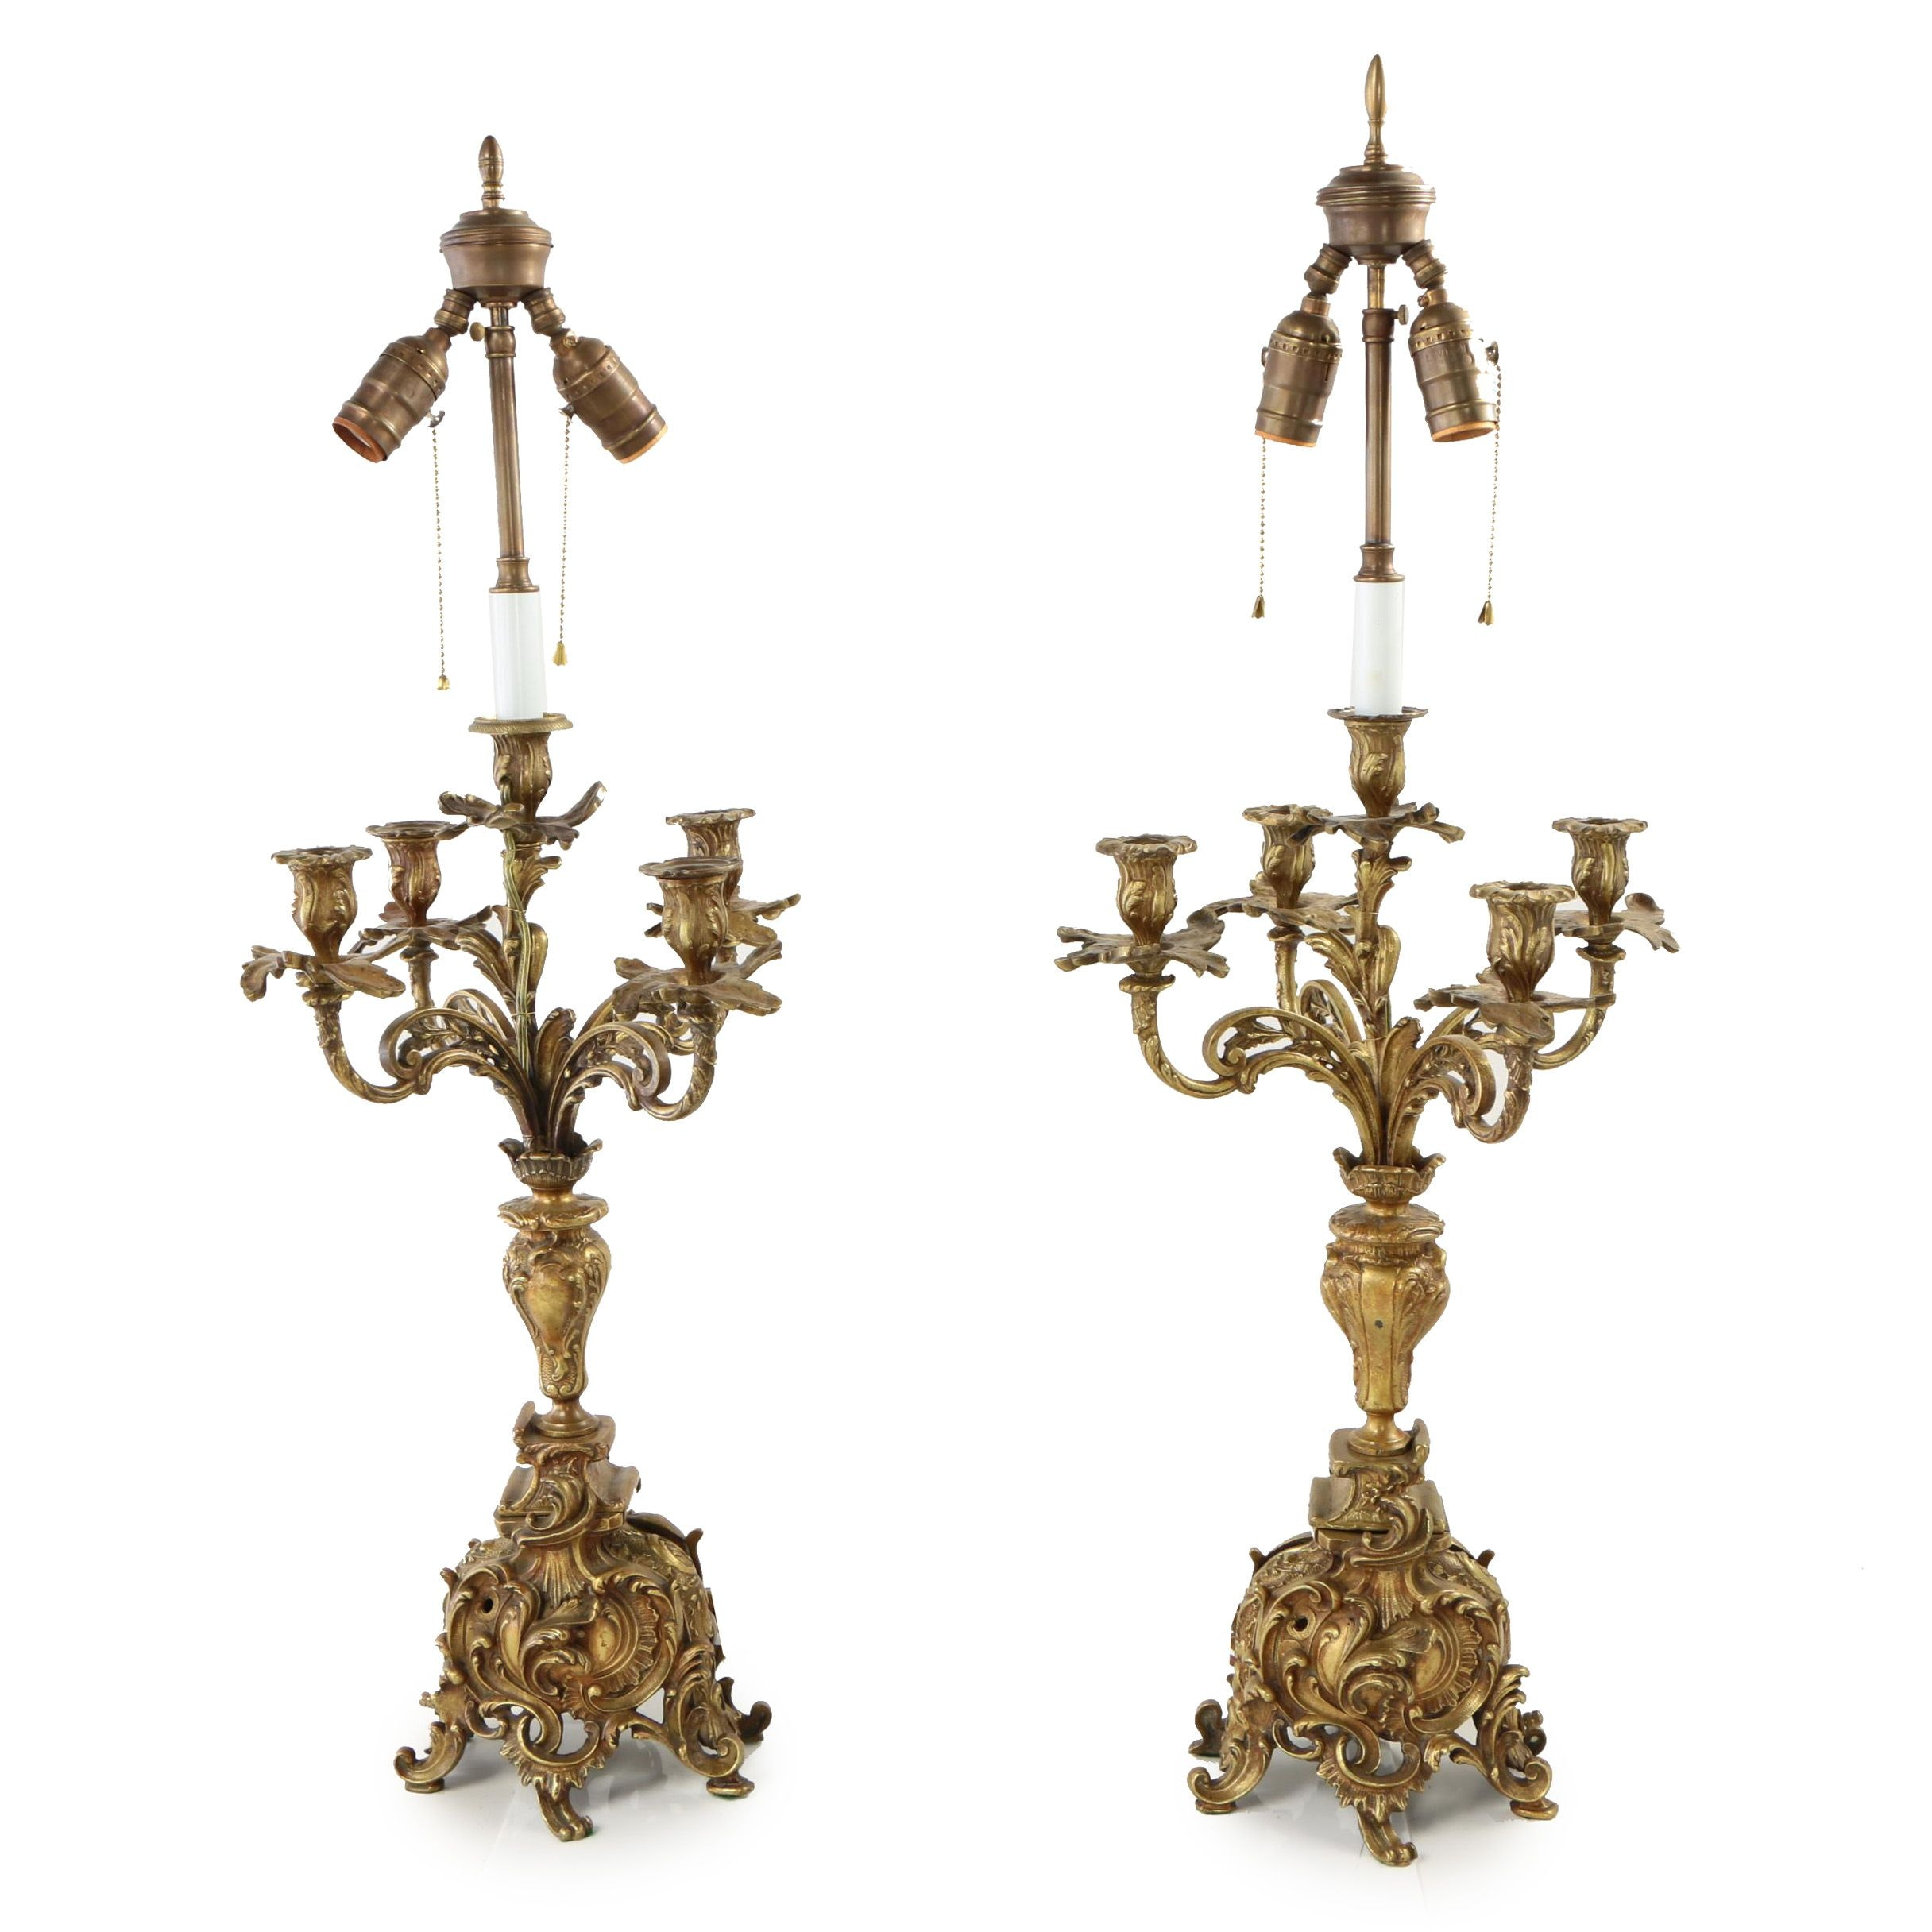 Pair of Converted Baroque Style Brass Candelabra Table Lamps